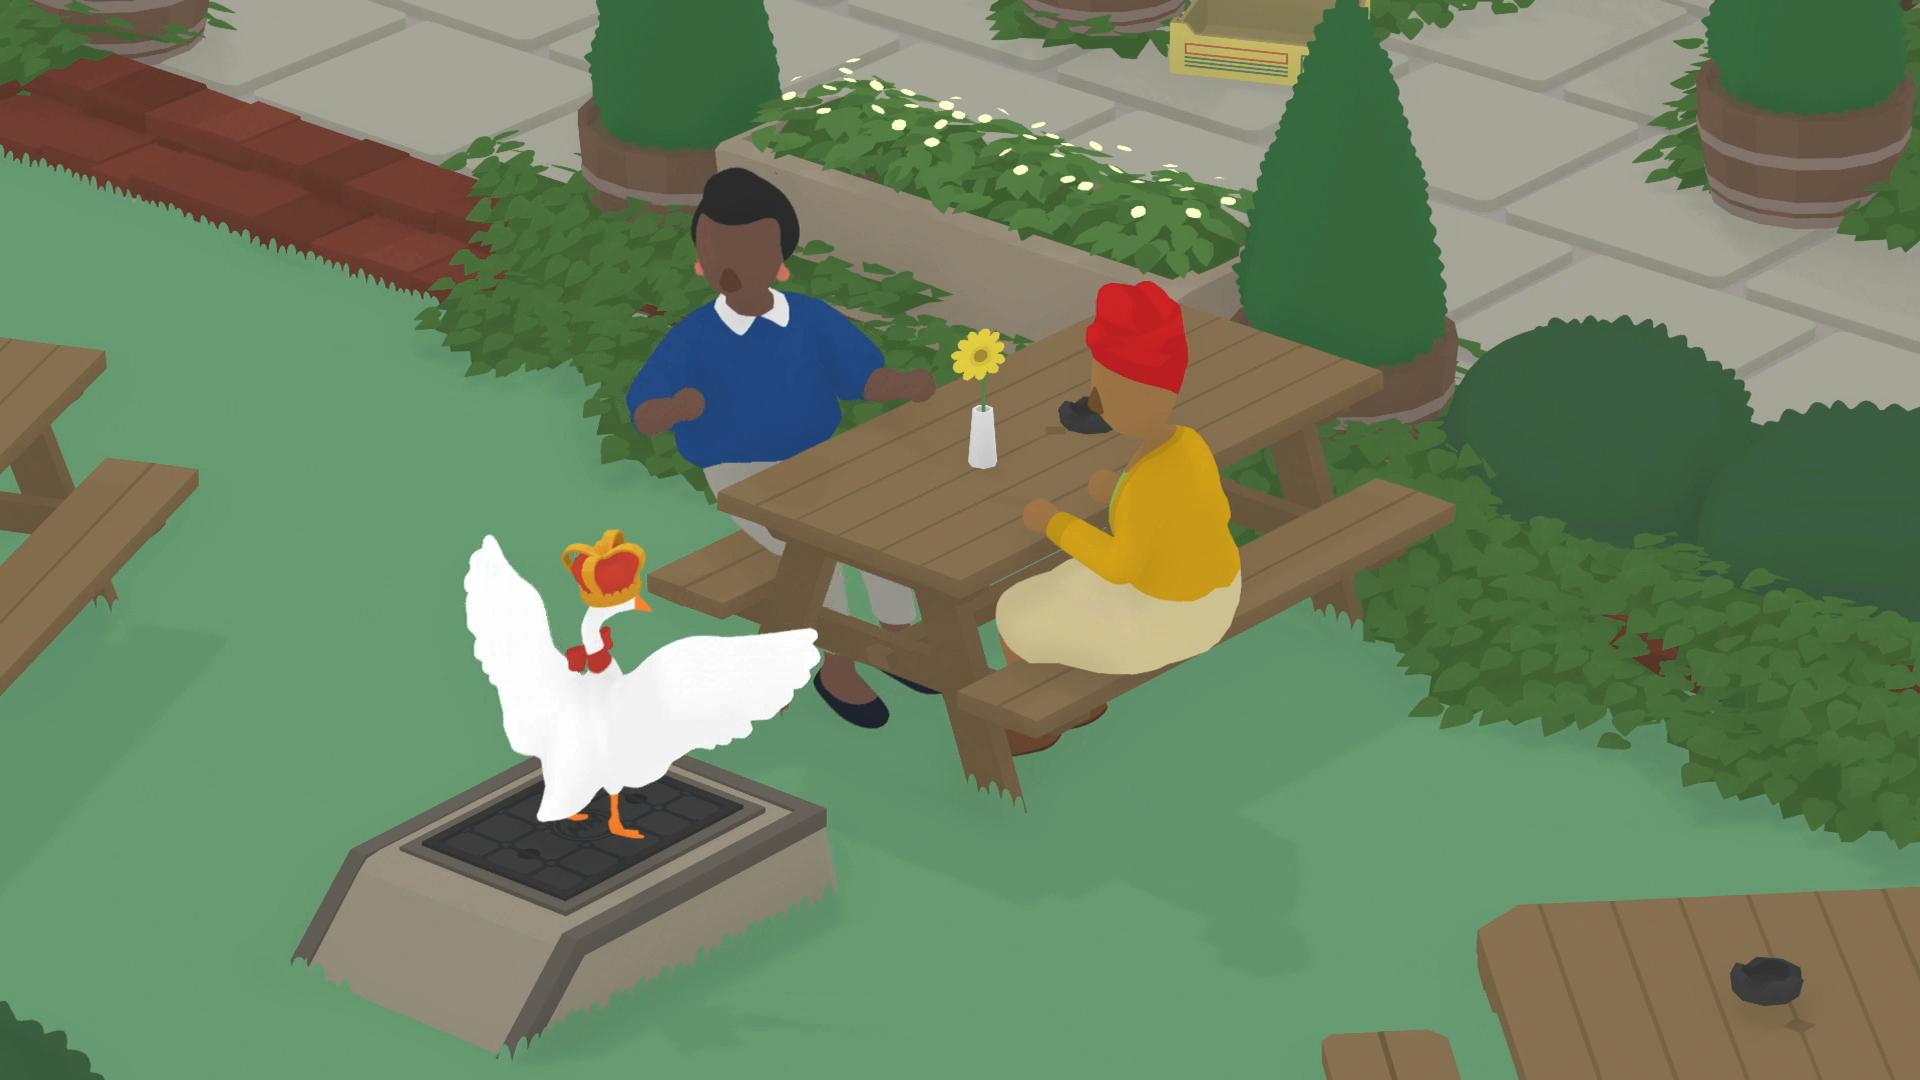 in defense of short games, single-sitting games Untitled Goose Game